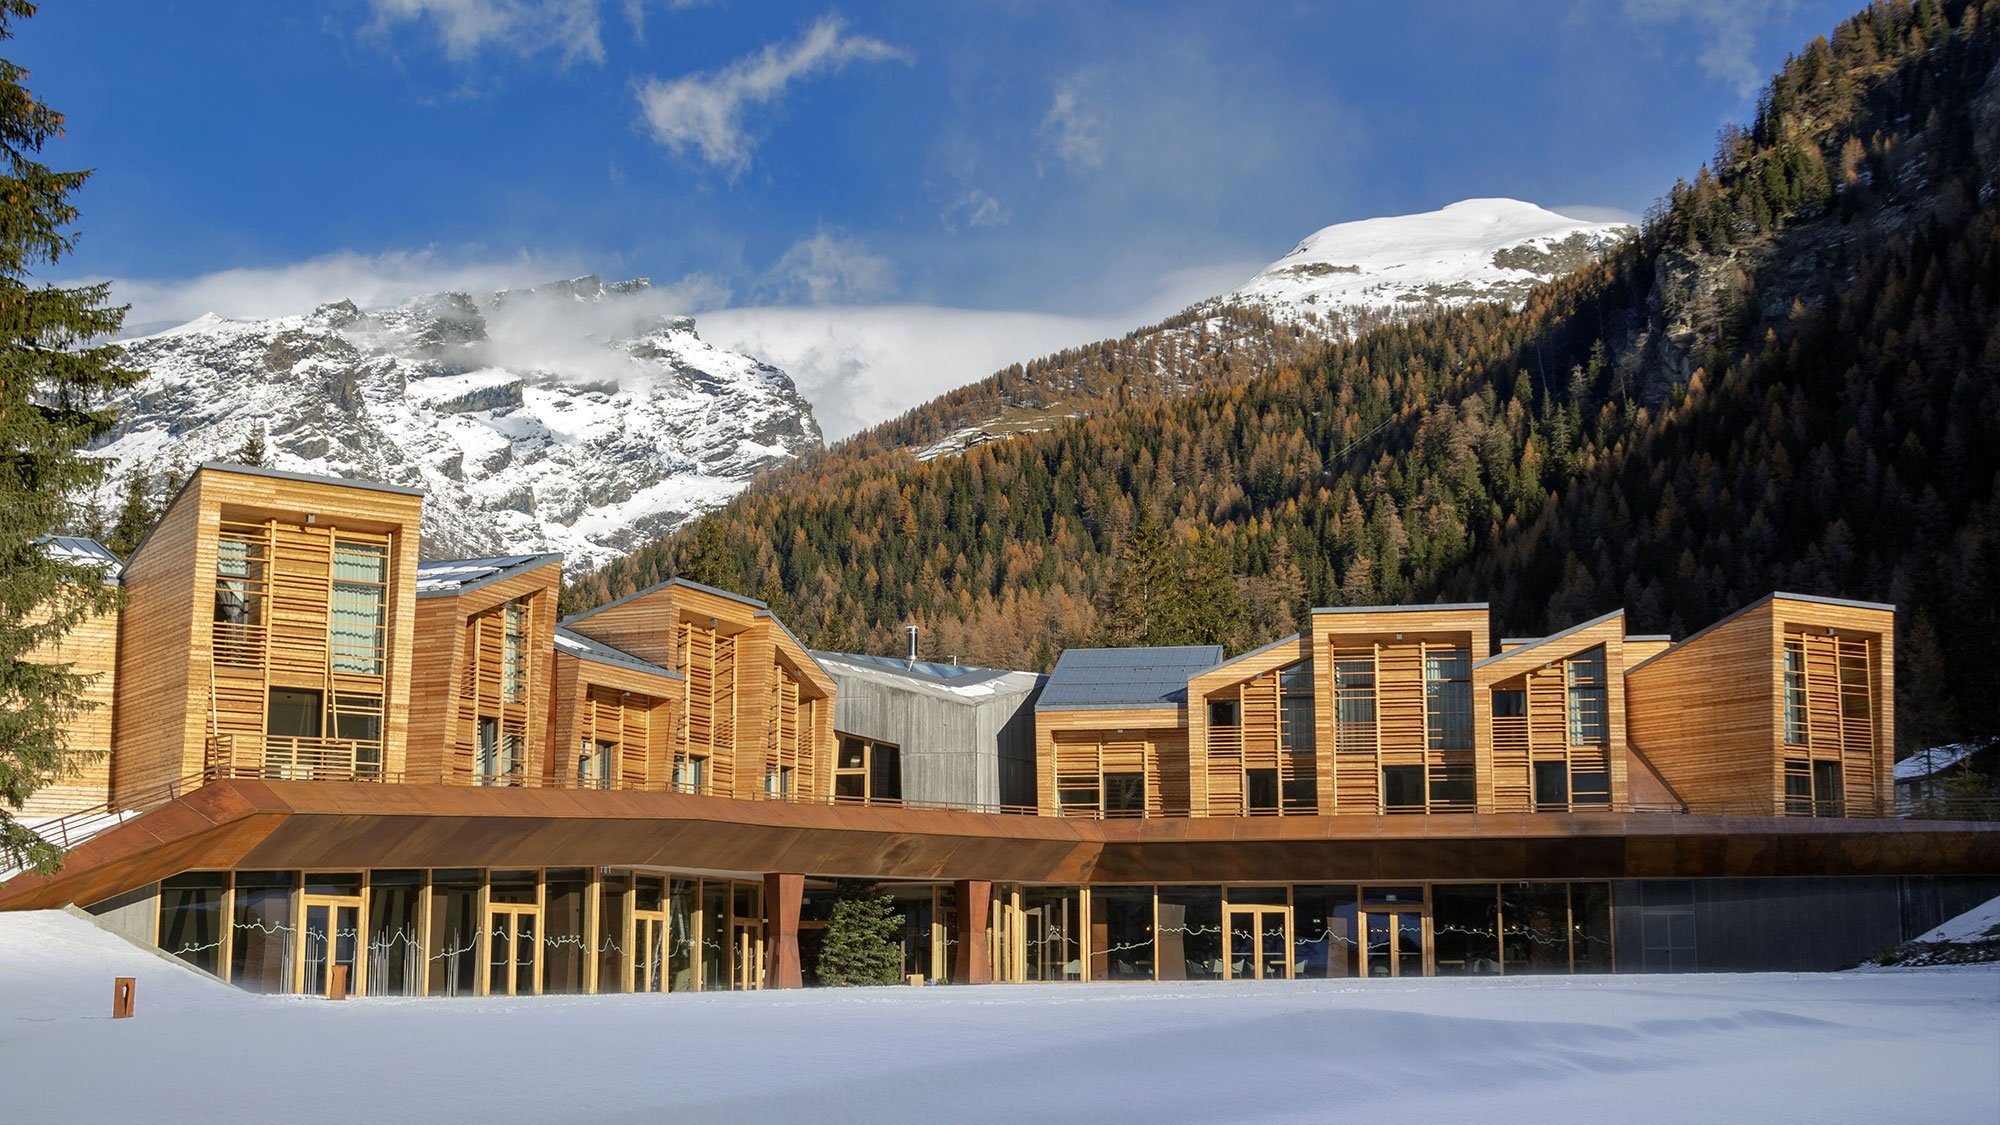 Photo of Andiamo a scoprire il CampZero Active & Luxury Resort a Champoluc